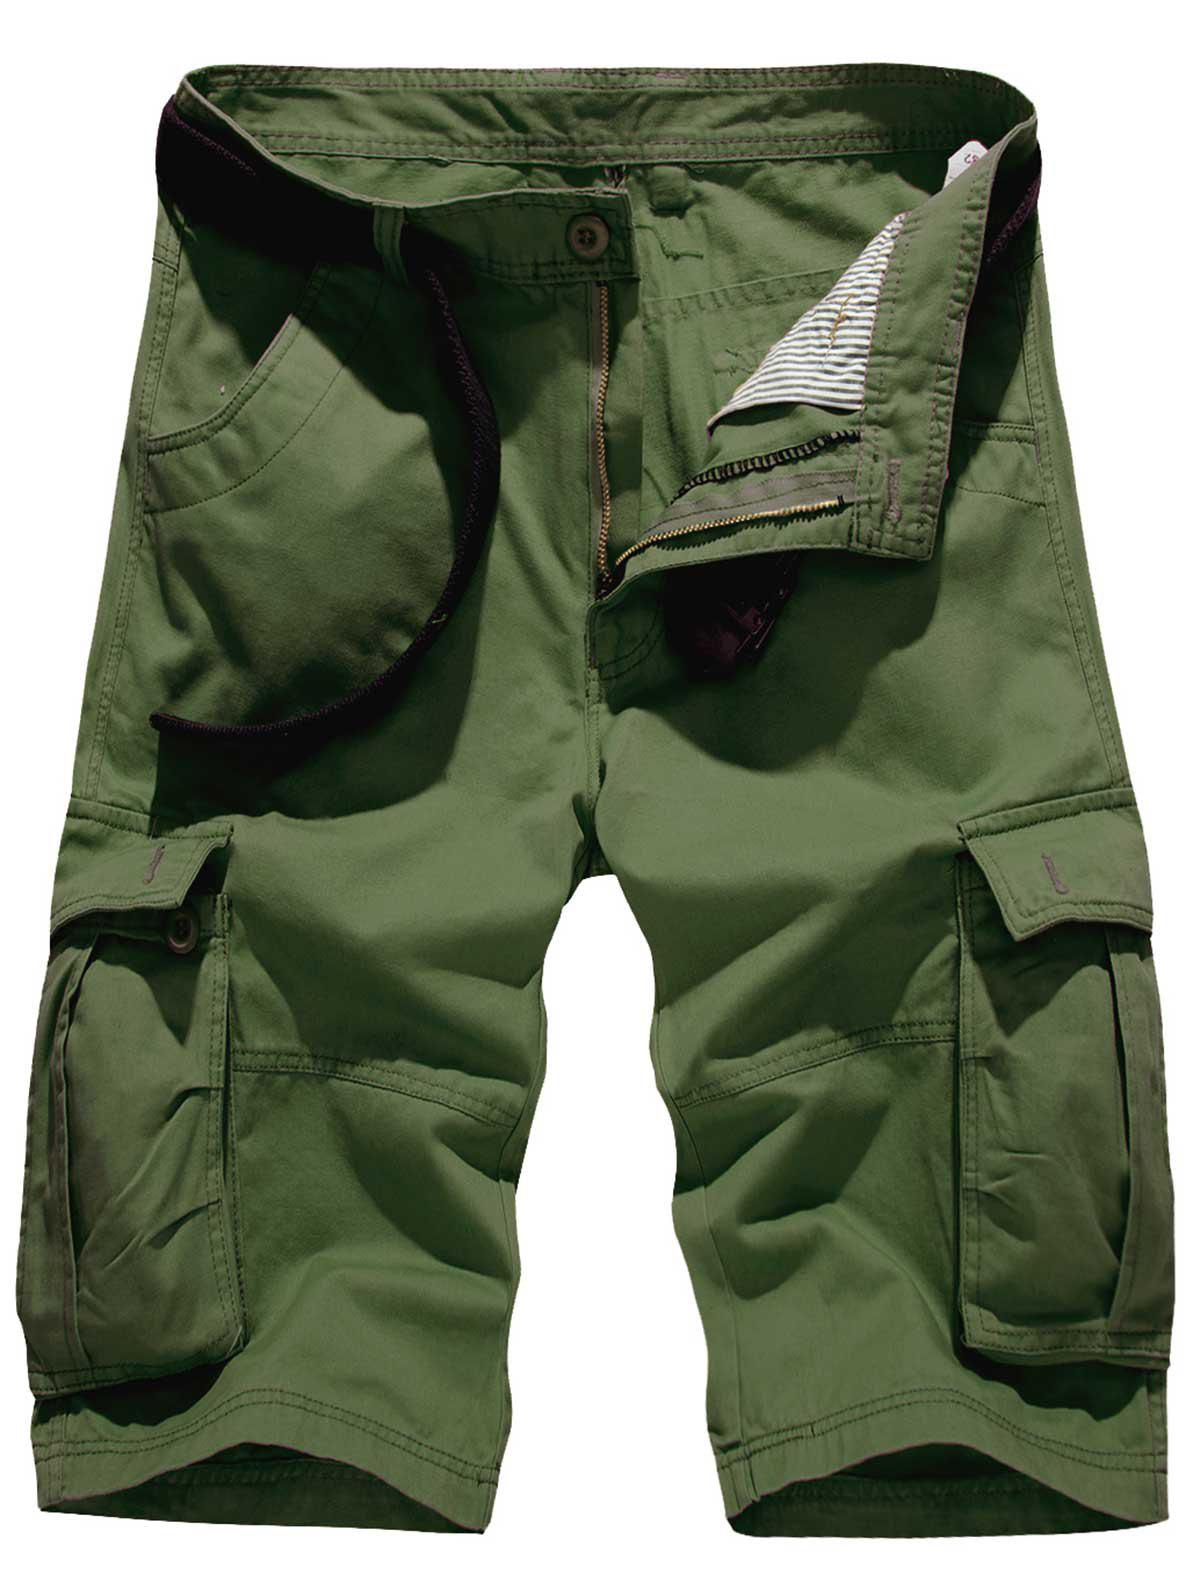 Pockets Embellished Zipper Fly Cargo Shorts - ARMY GREEN 34